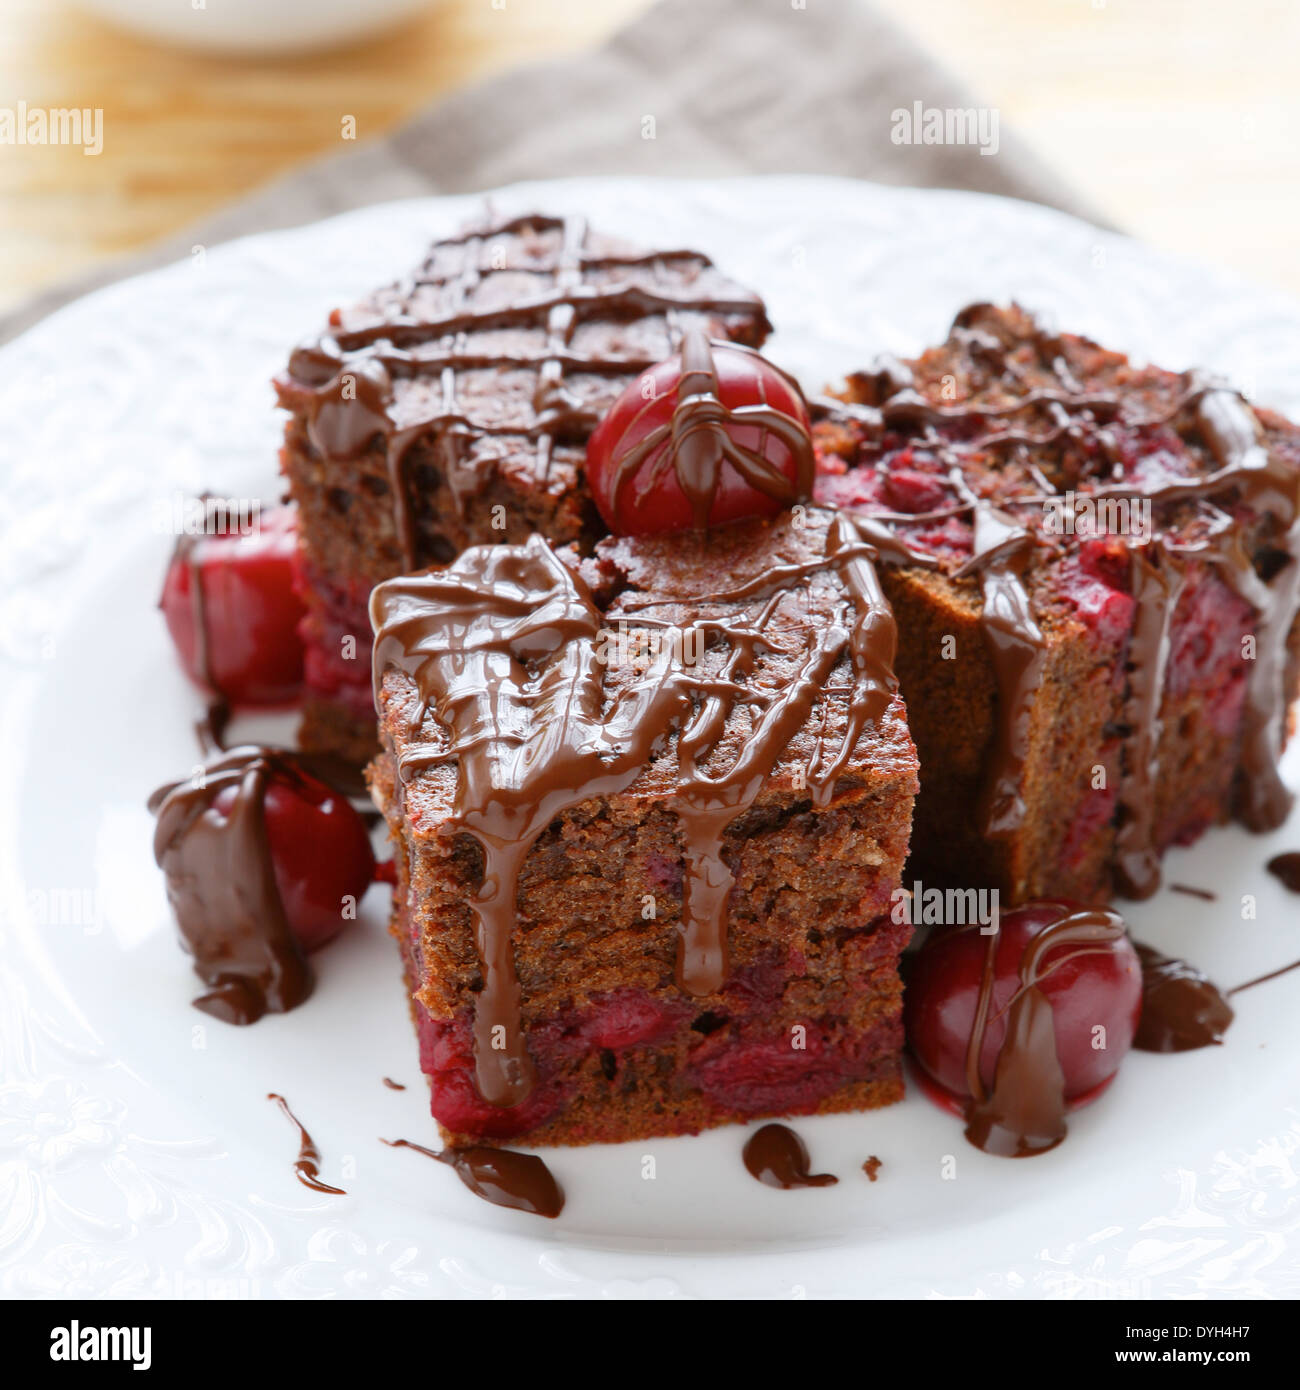 brownie slices with cherries, food closeup - Stock Image